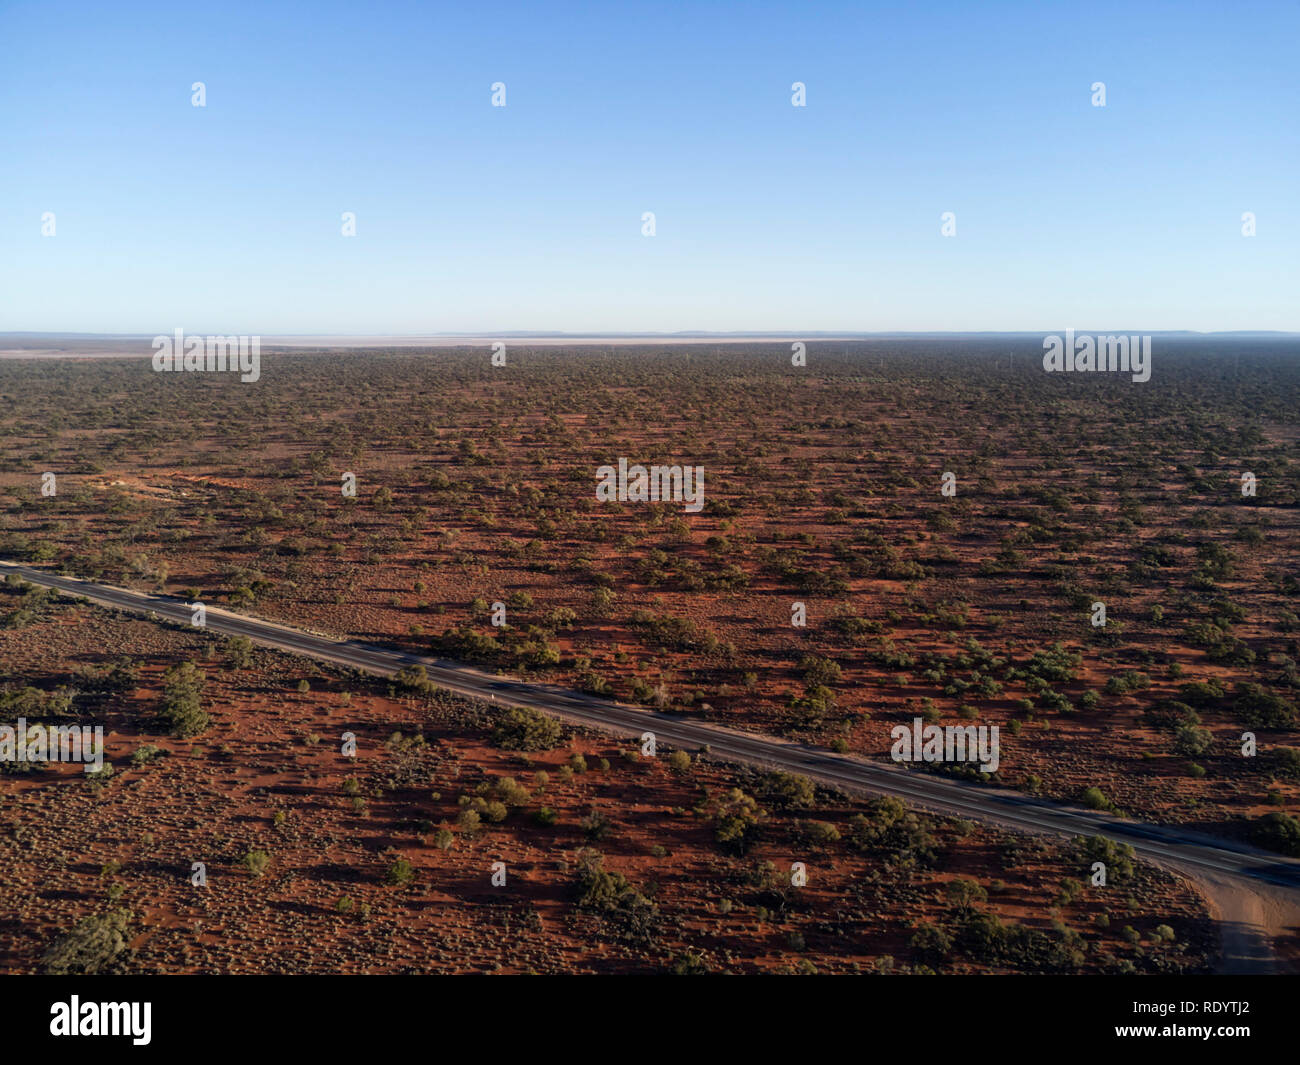 Aerial of the Stuart Highway as it passes through the arid environment of southern South Australia - Stock Image